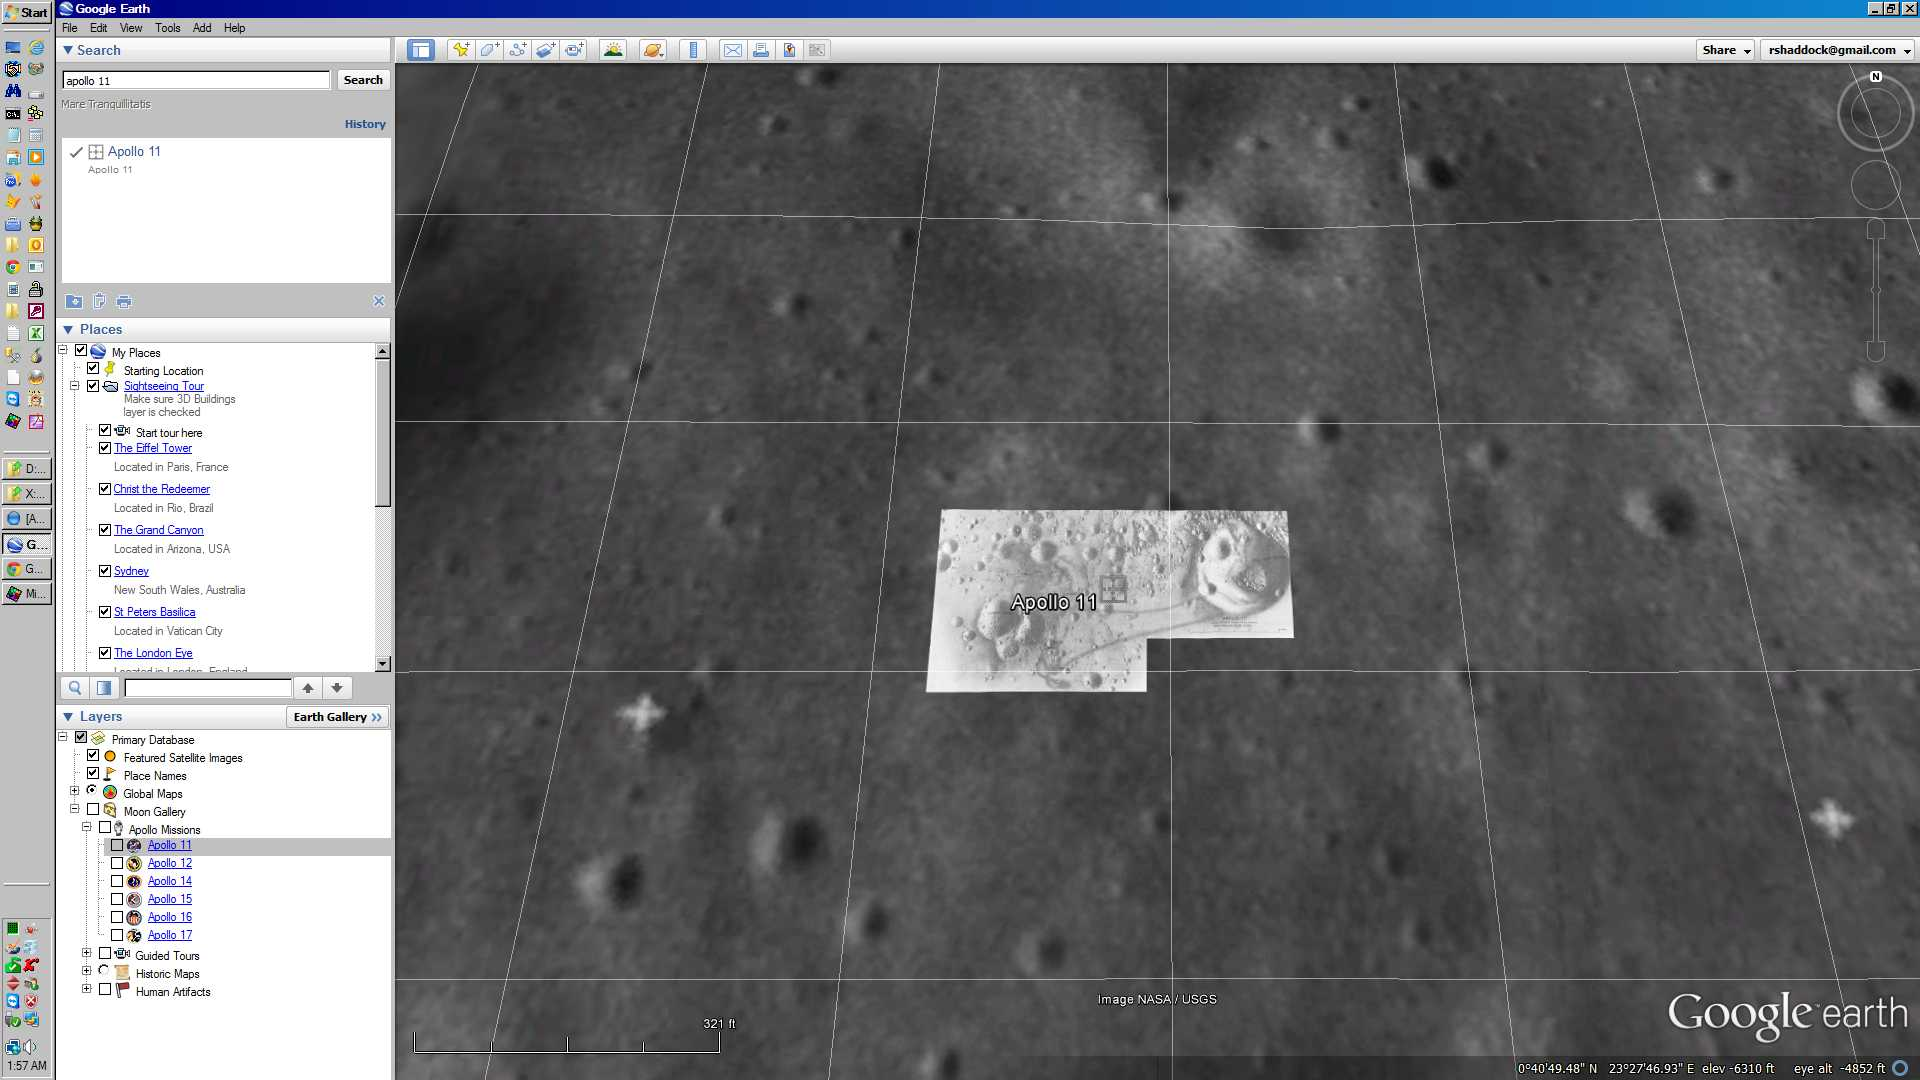 If you want to see credible Apollo landing sites, use Google Earth!